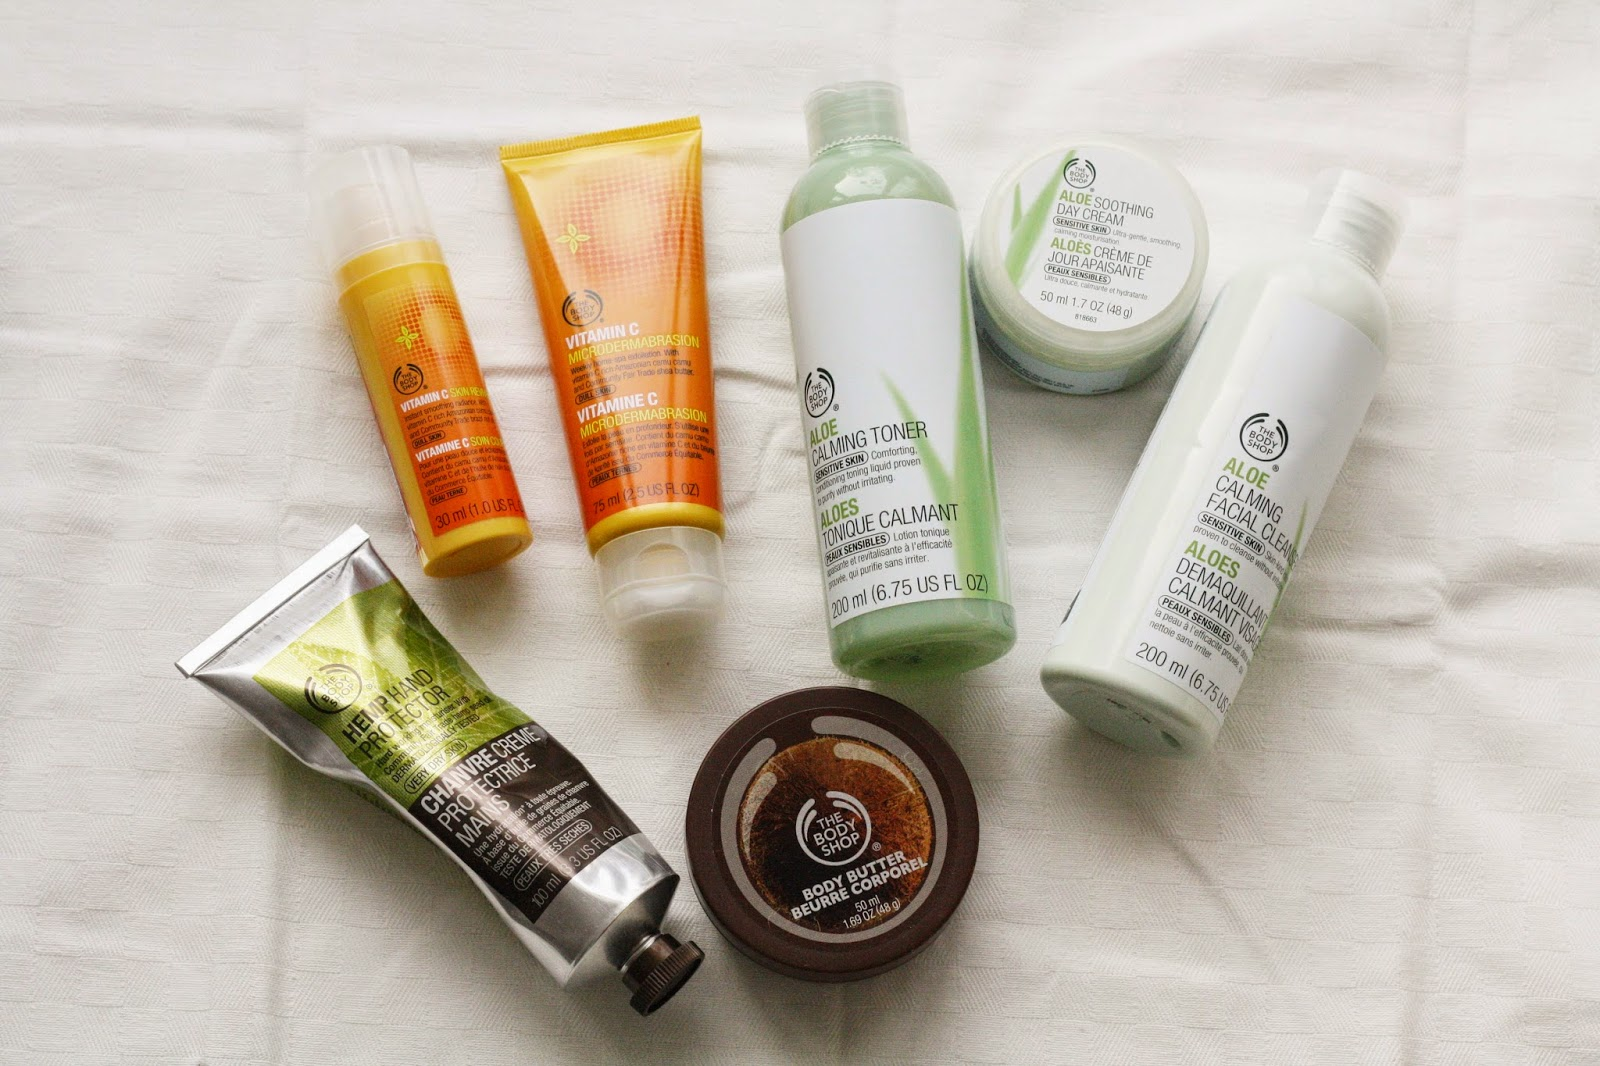 The Body Shop Vitamin C Aloe Range